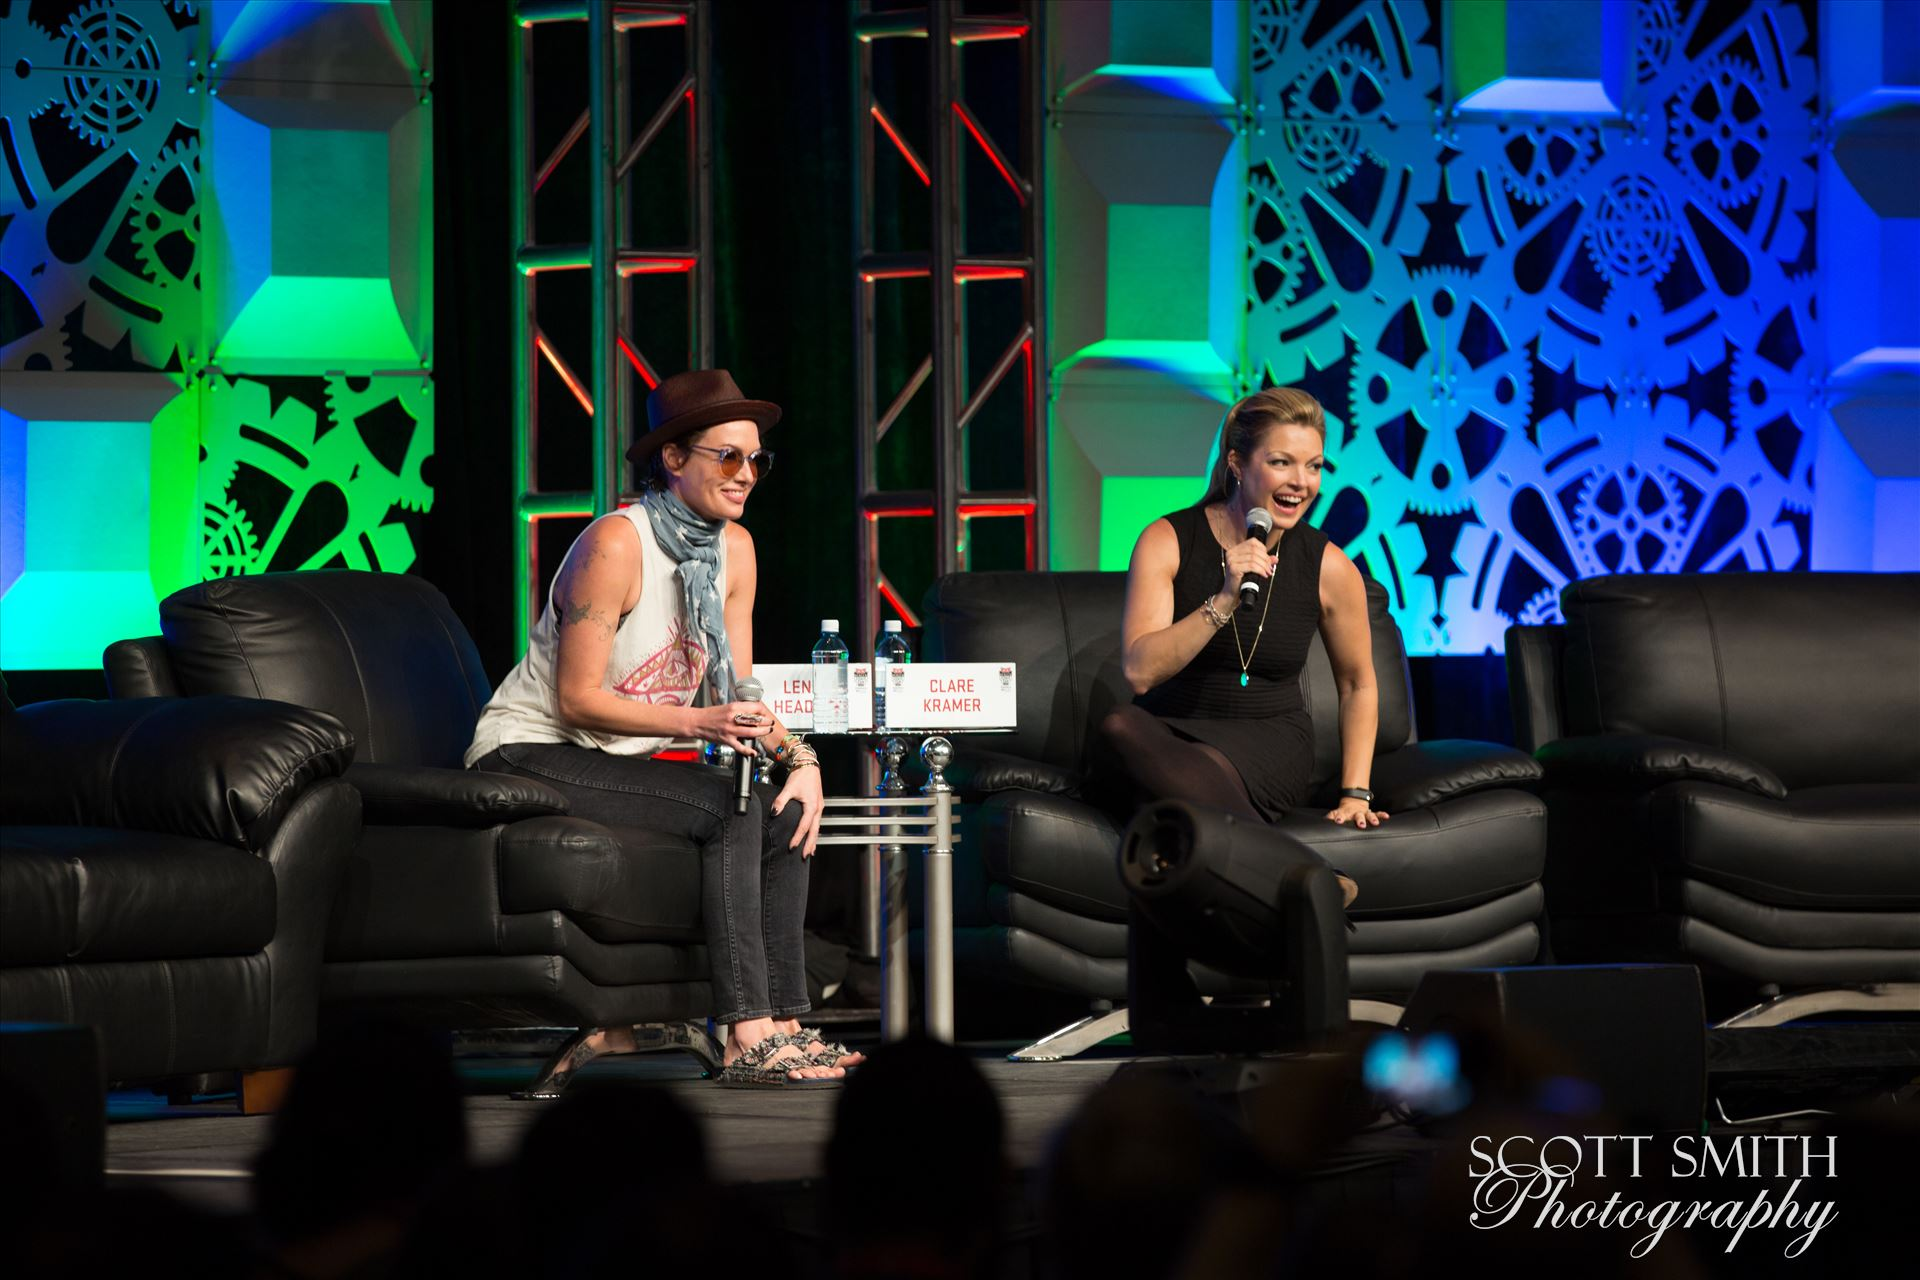 Denver Comic Con 2016 03 - Denver Comic Con 2016 at the Colorado Convention Center. Clare Kramer and Lena Headey. by D Scott Smith